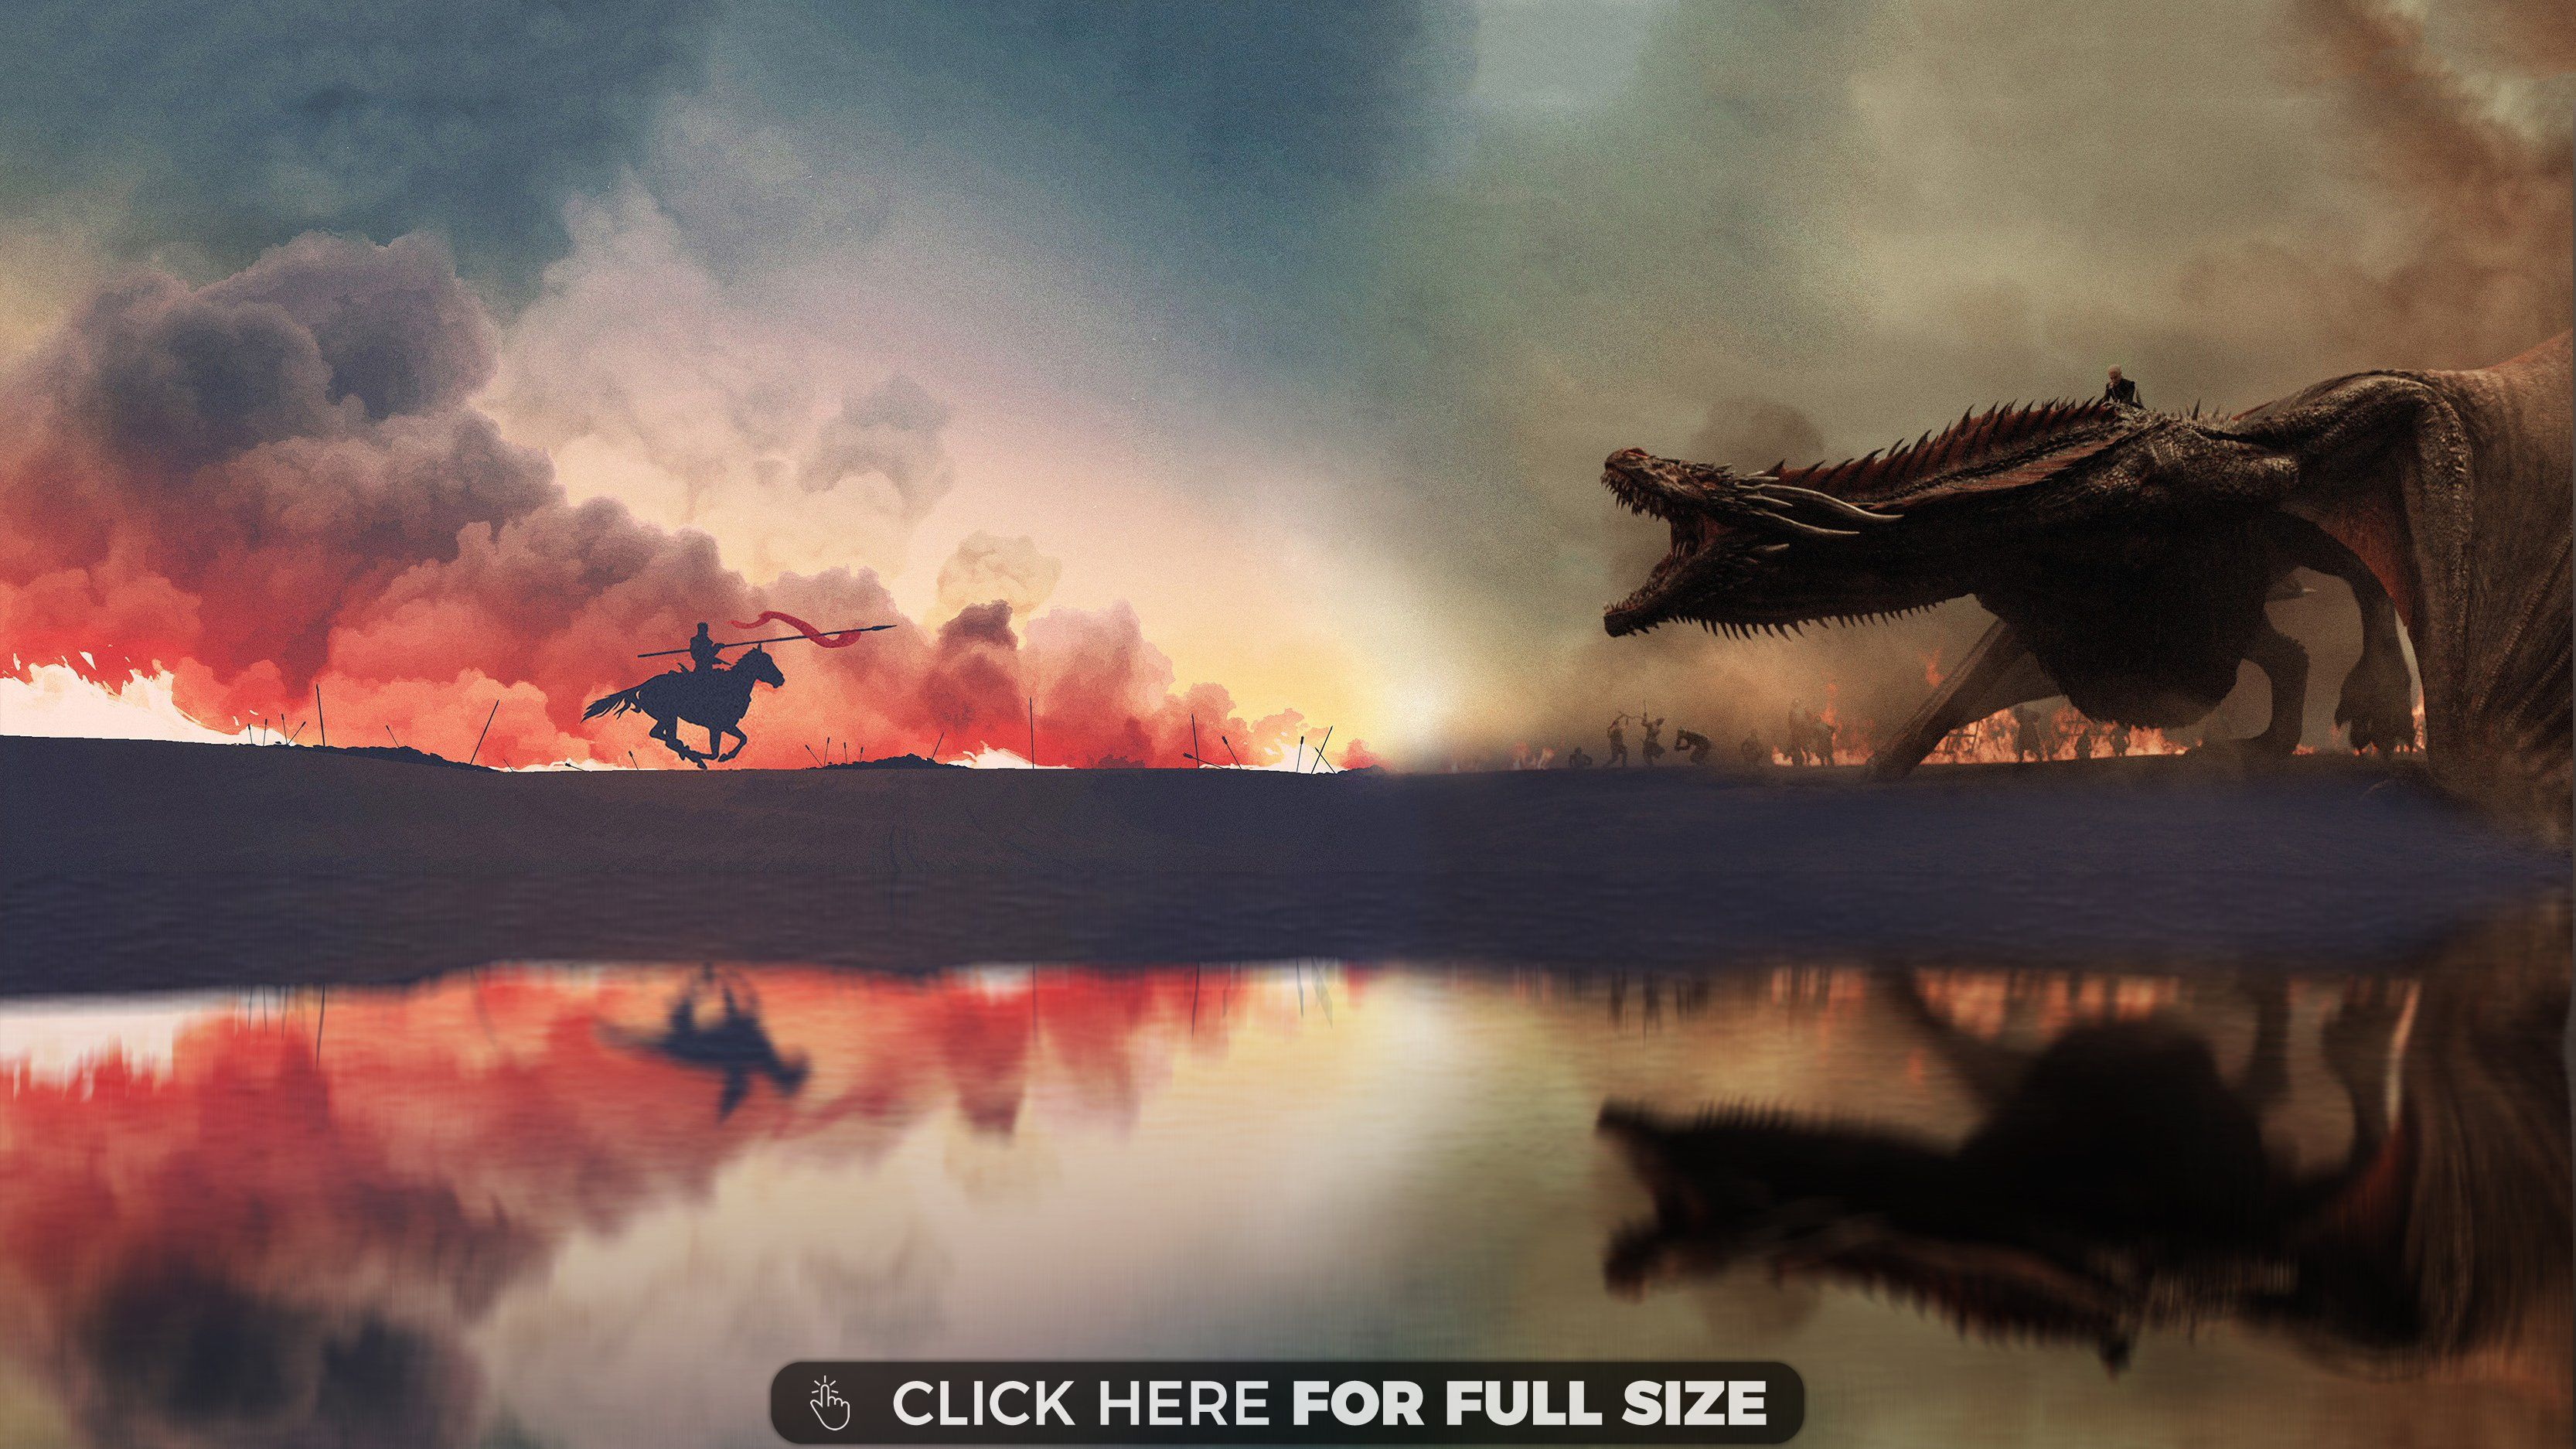 Loot Train Attack Hd Wallpaper Game Of Thrones Artwork Got Wallpaper Game Of Thrones Dragons